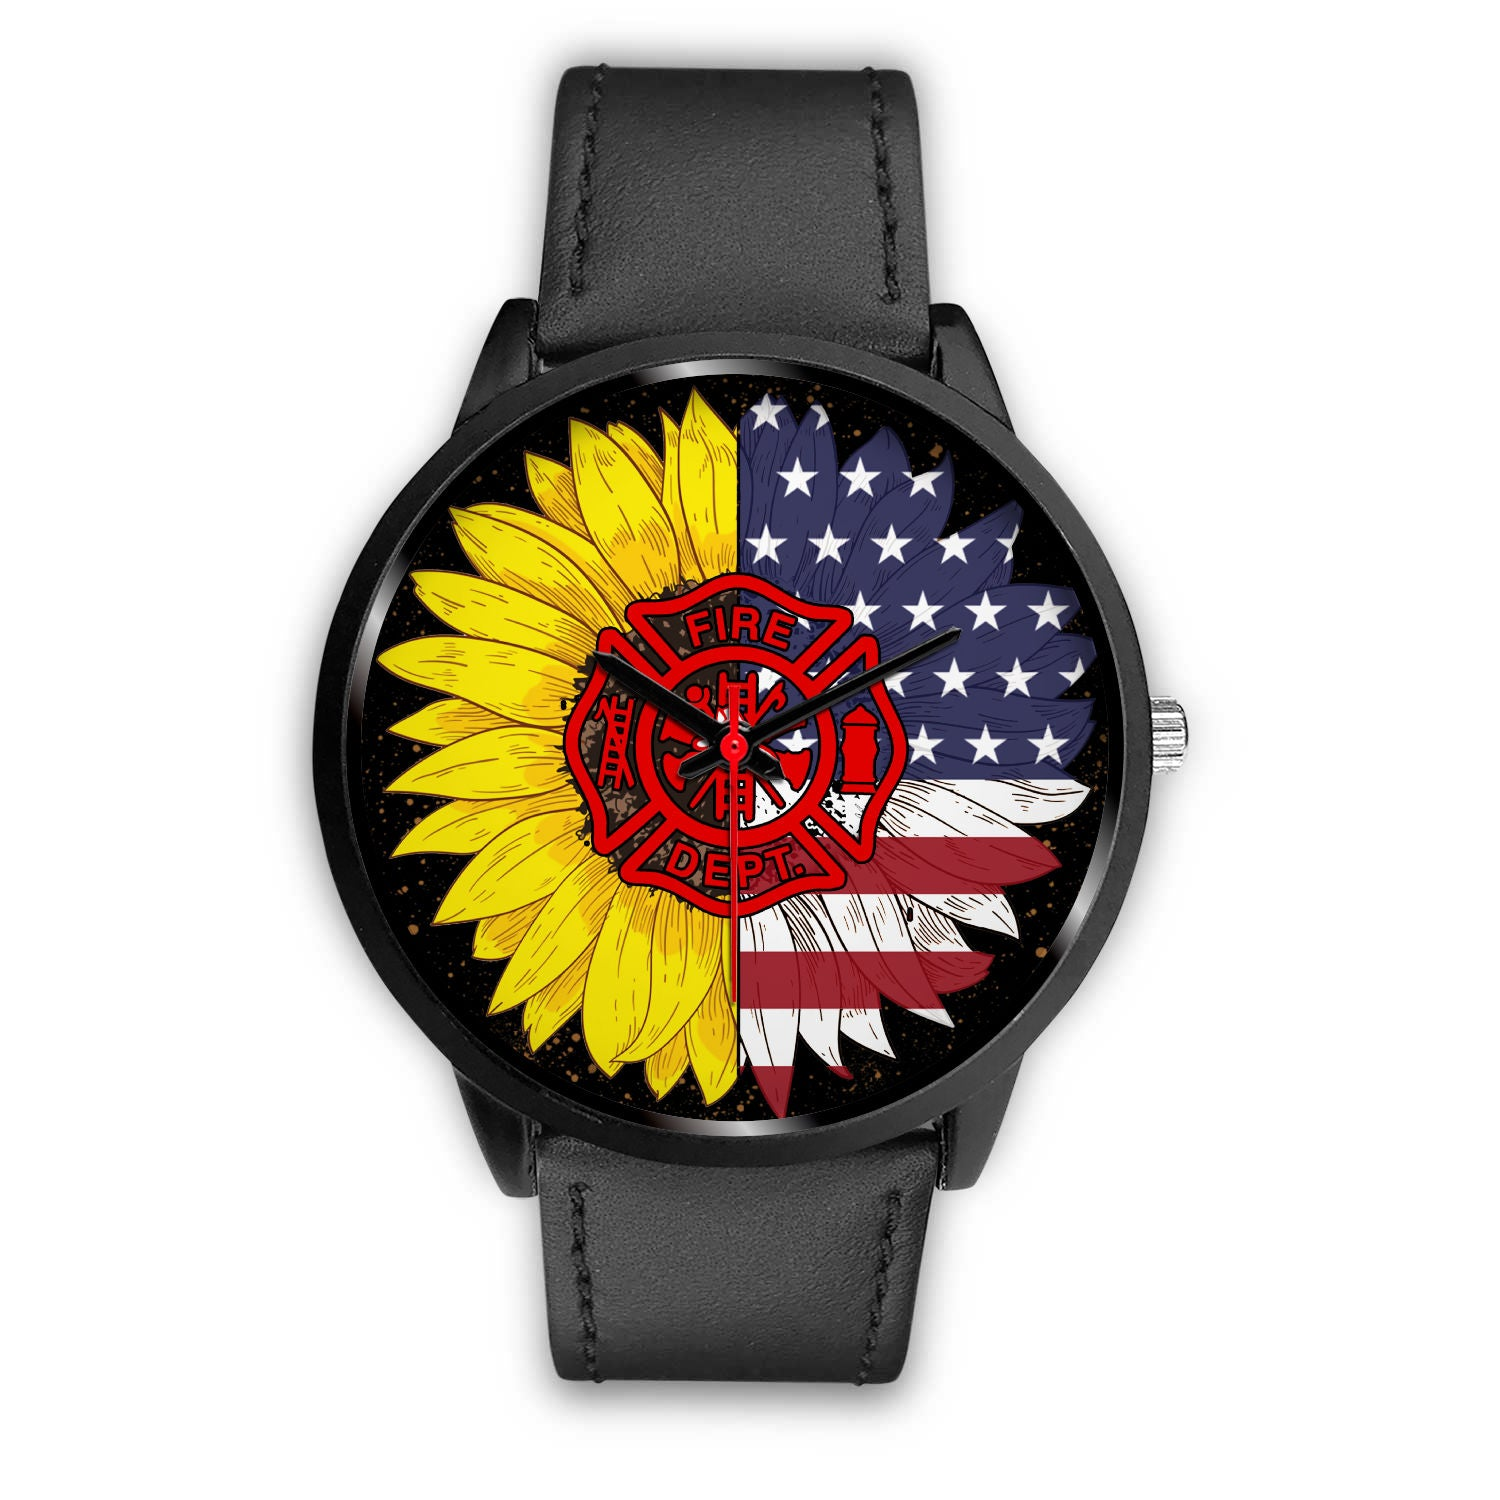 VIRA real genuine leather BAND WATCH FOR FIREFIGHTER And SUNFLOWER LOVERS